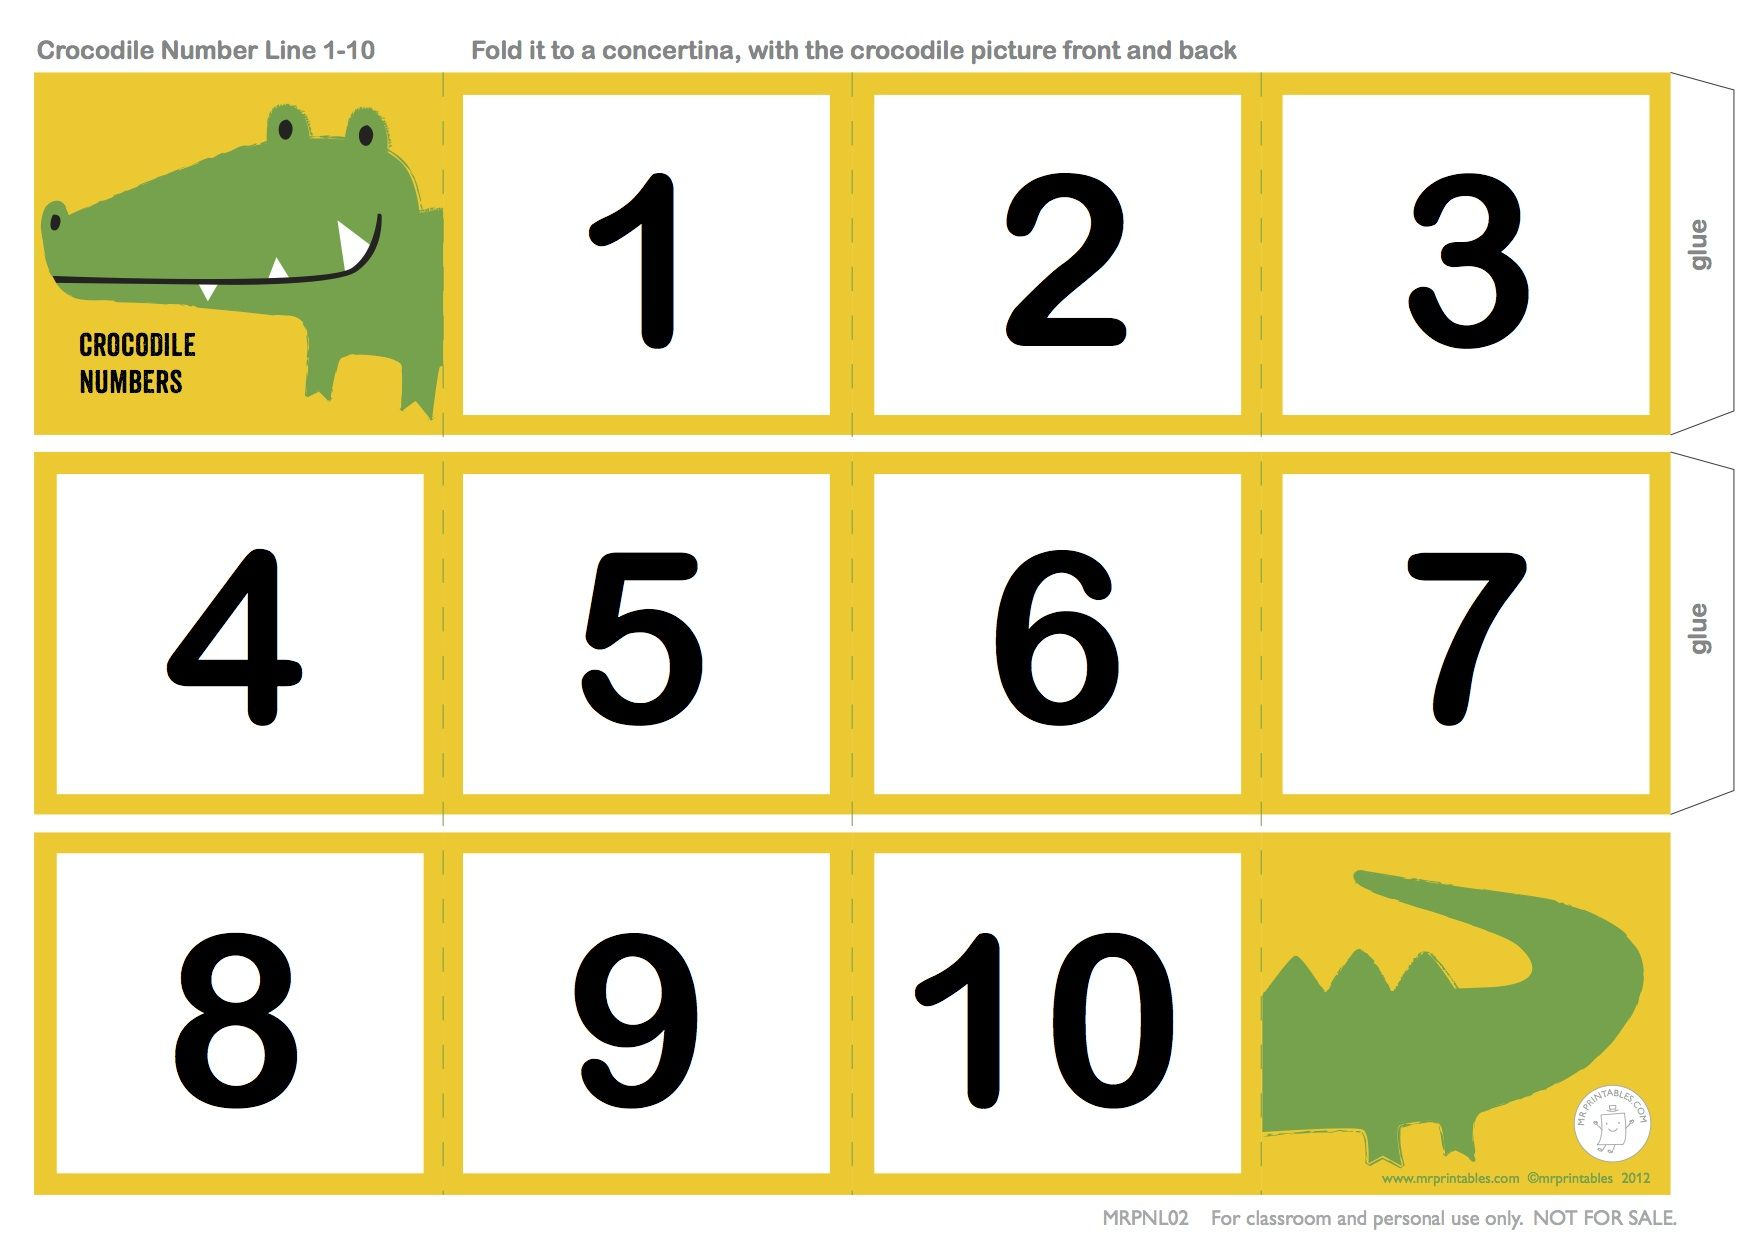 Crocodile Number Line